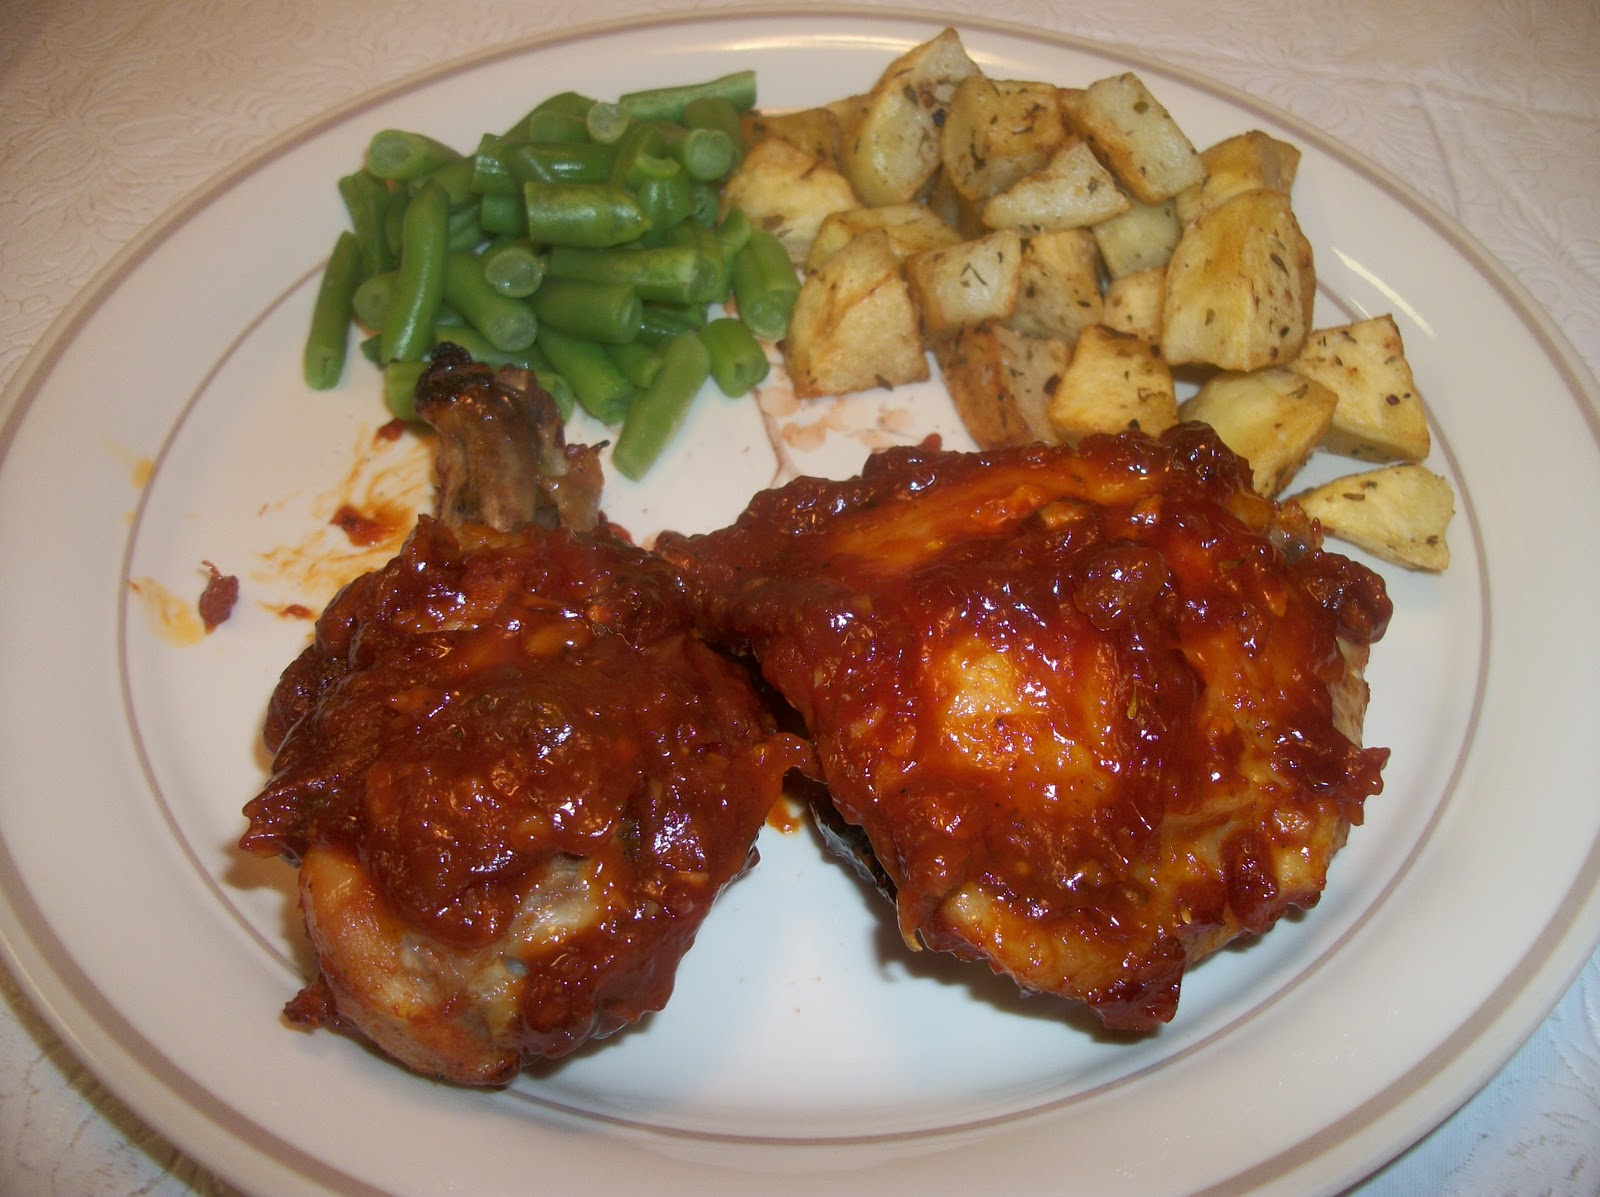 Six Worlds Of Cooking Bbq Chicken With Green Beans Amp Roasted Potatoes